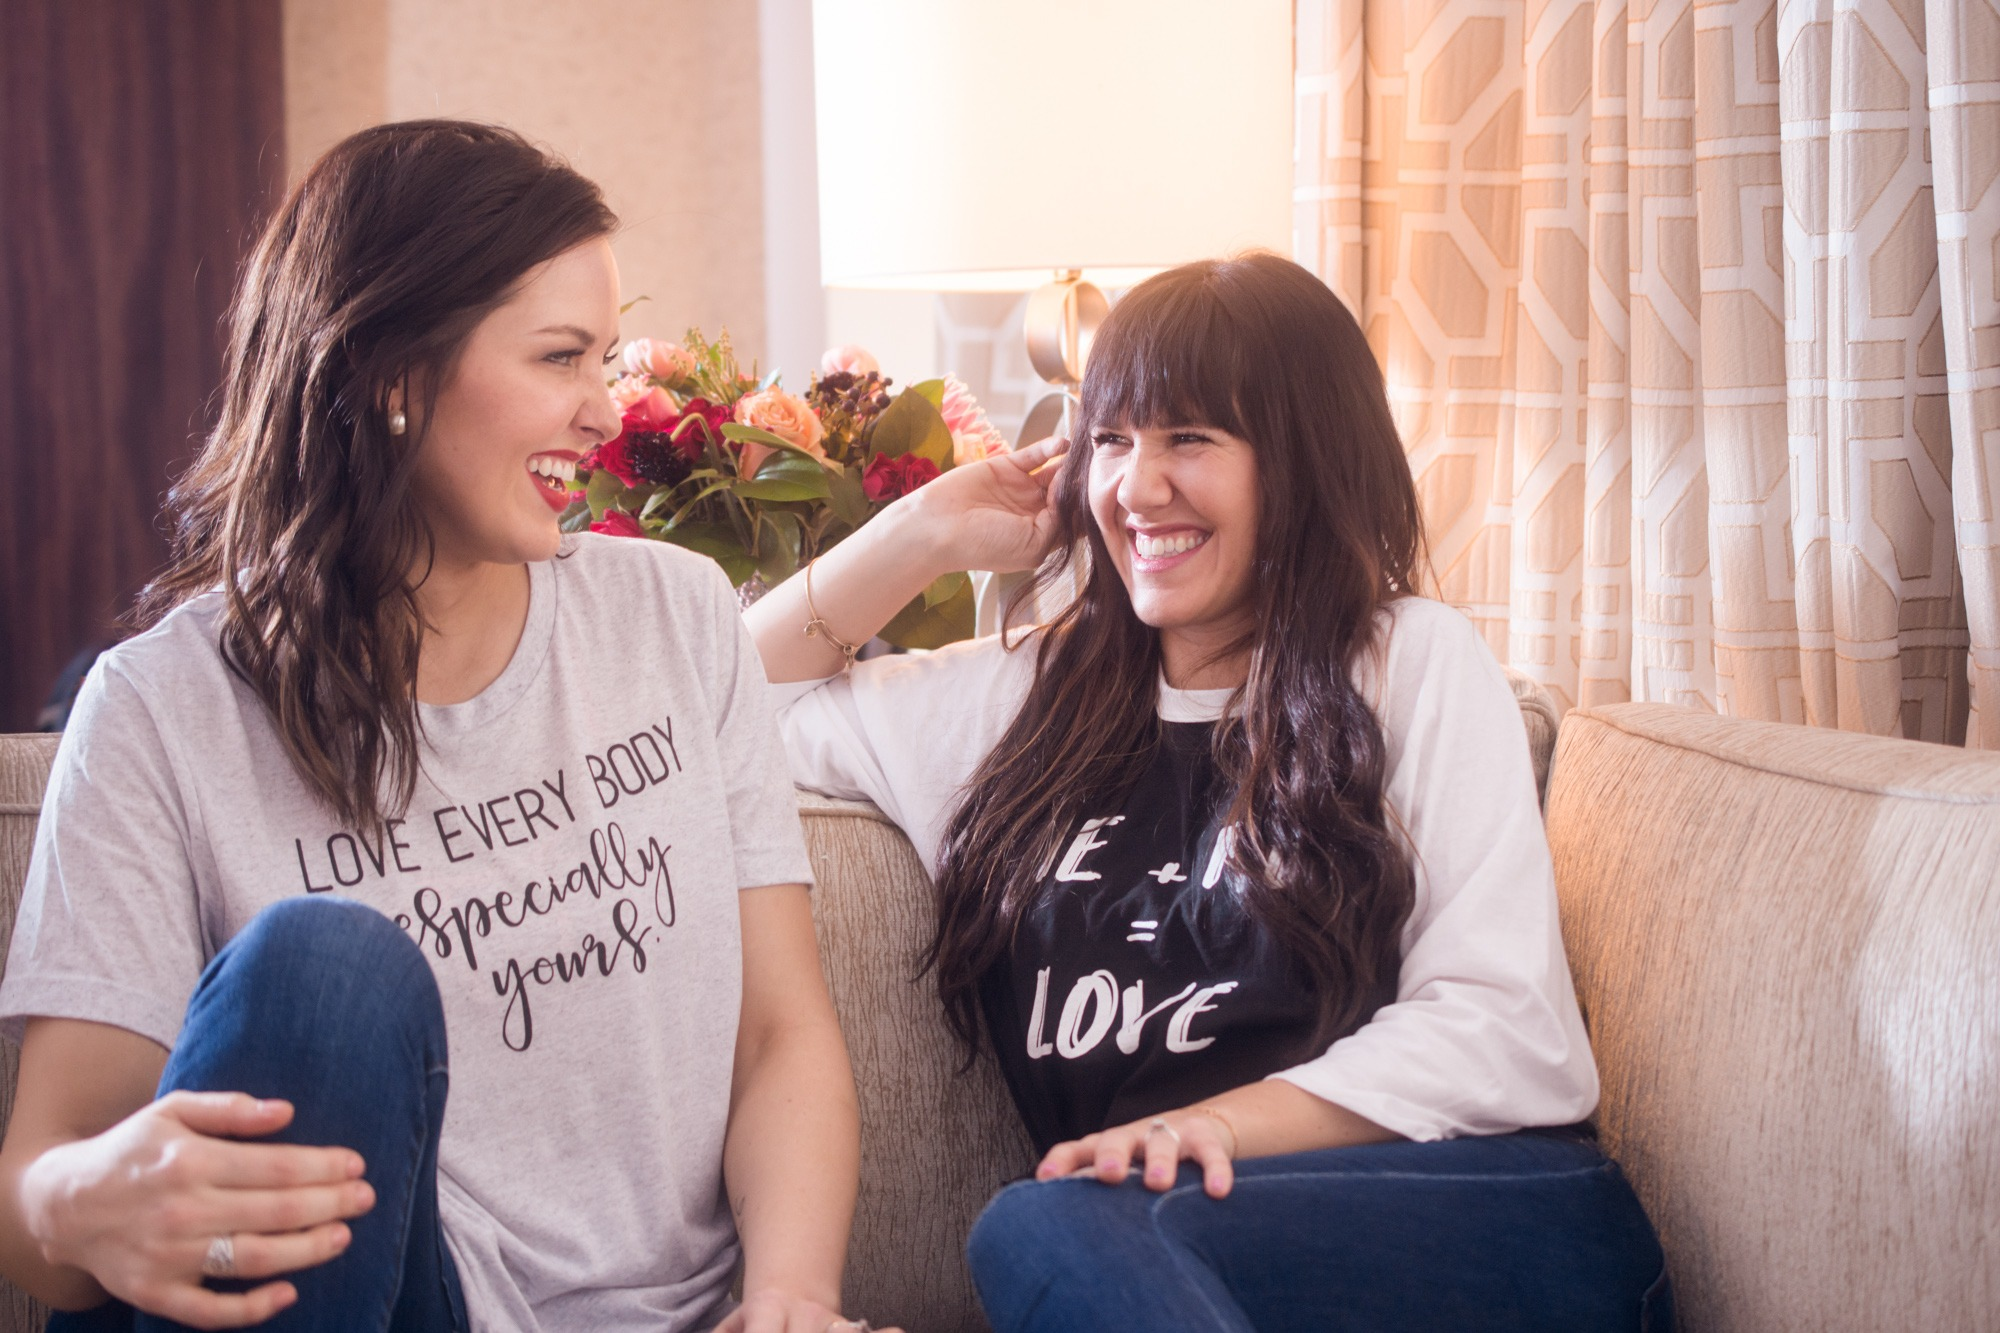 Galentine's Blogger Staycation | Downtown Denver Staycation | Galentine's Day Shoot | Valentine's Day Look | Valentine's Day Style | Denver Colorado Staycation | Denver Colorado Trip